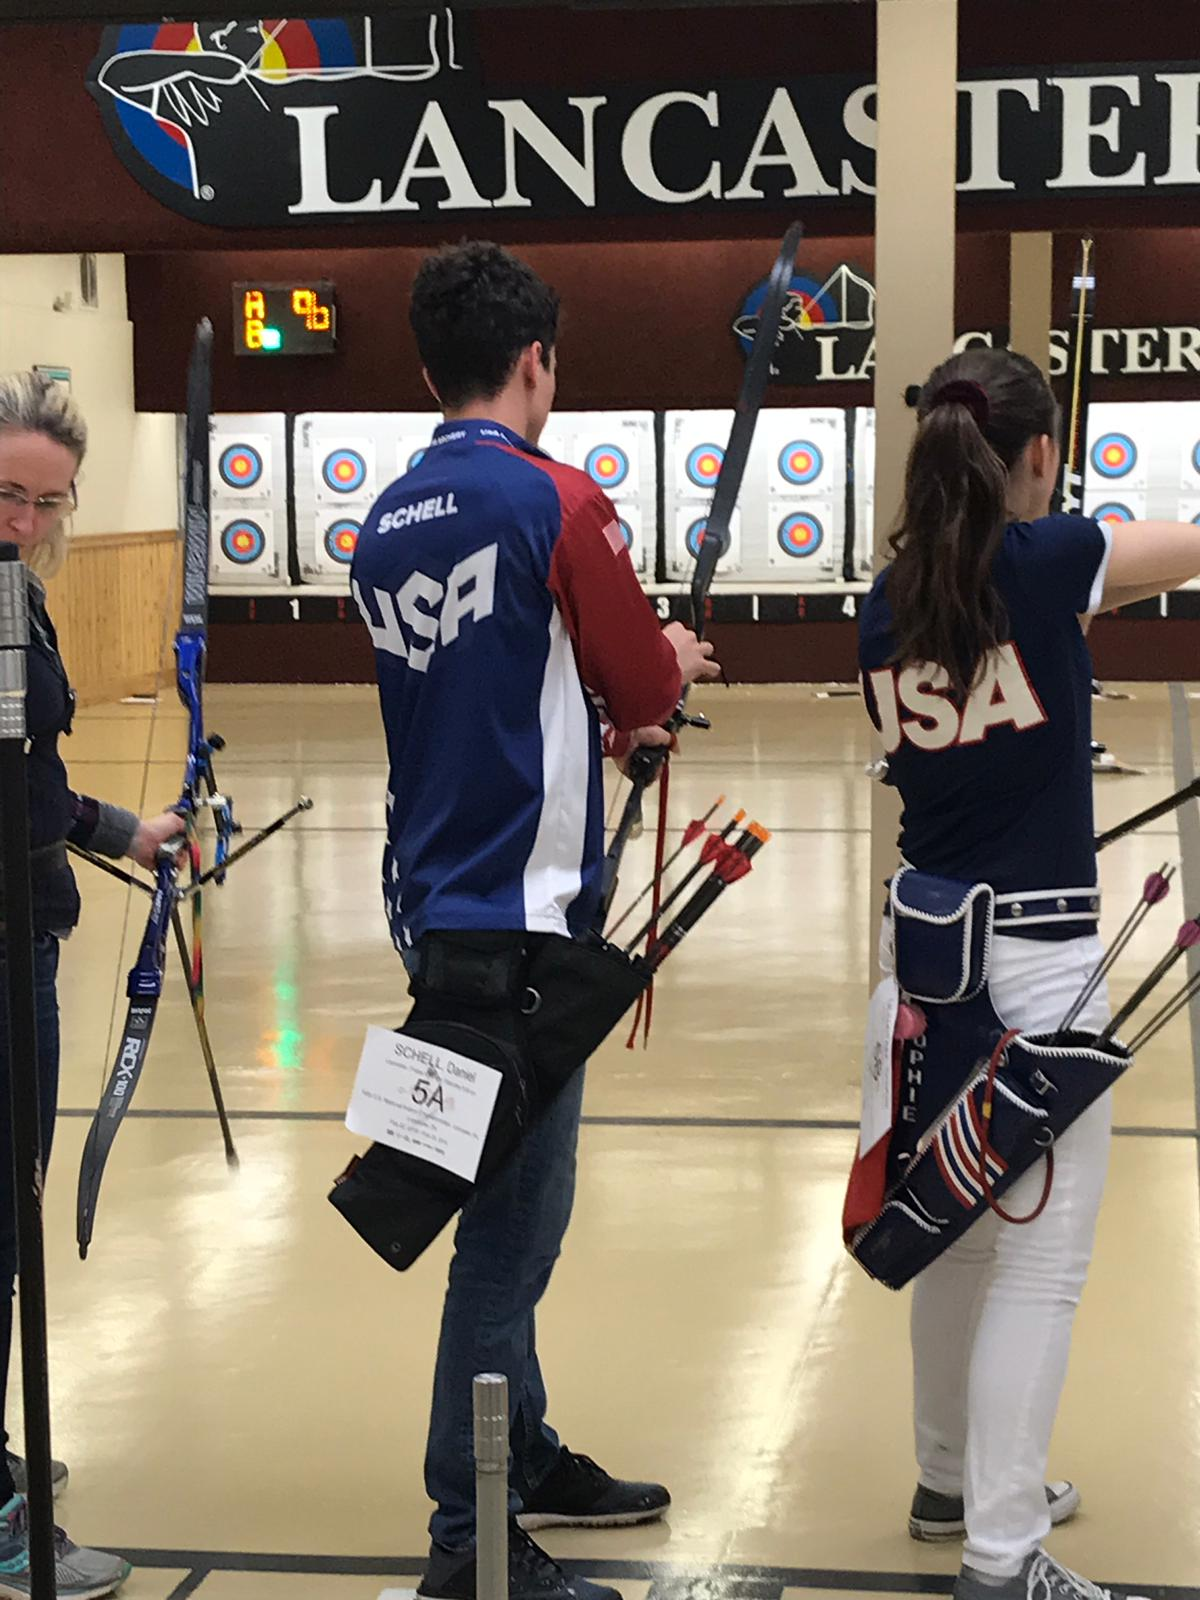 Student wins gold at national archery competition